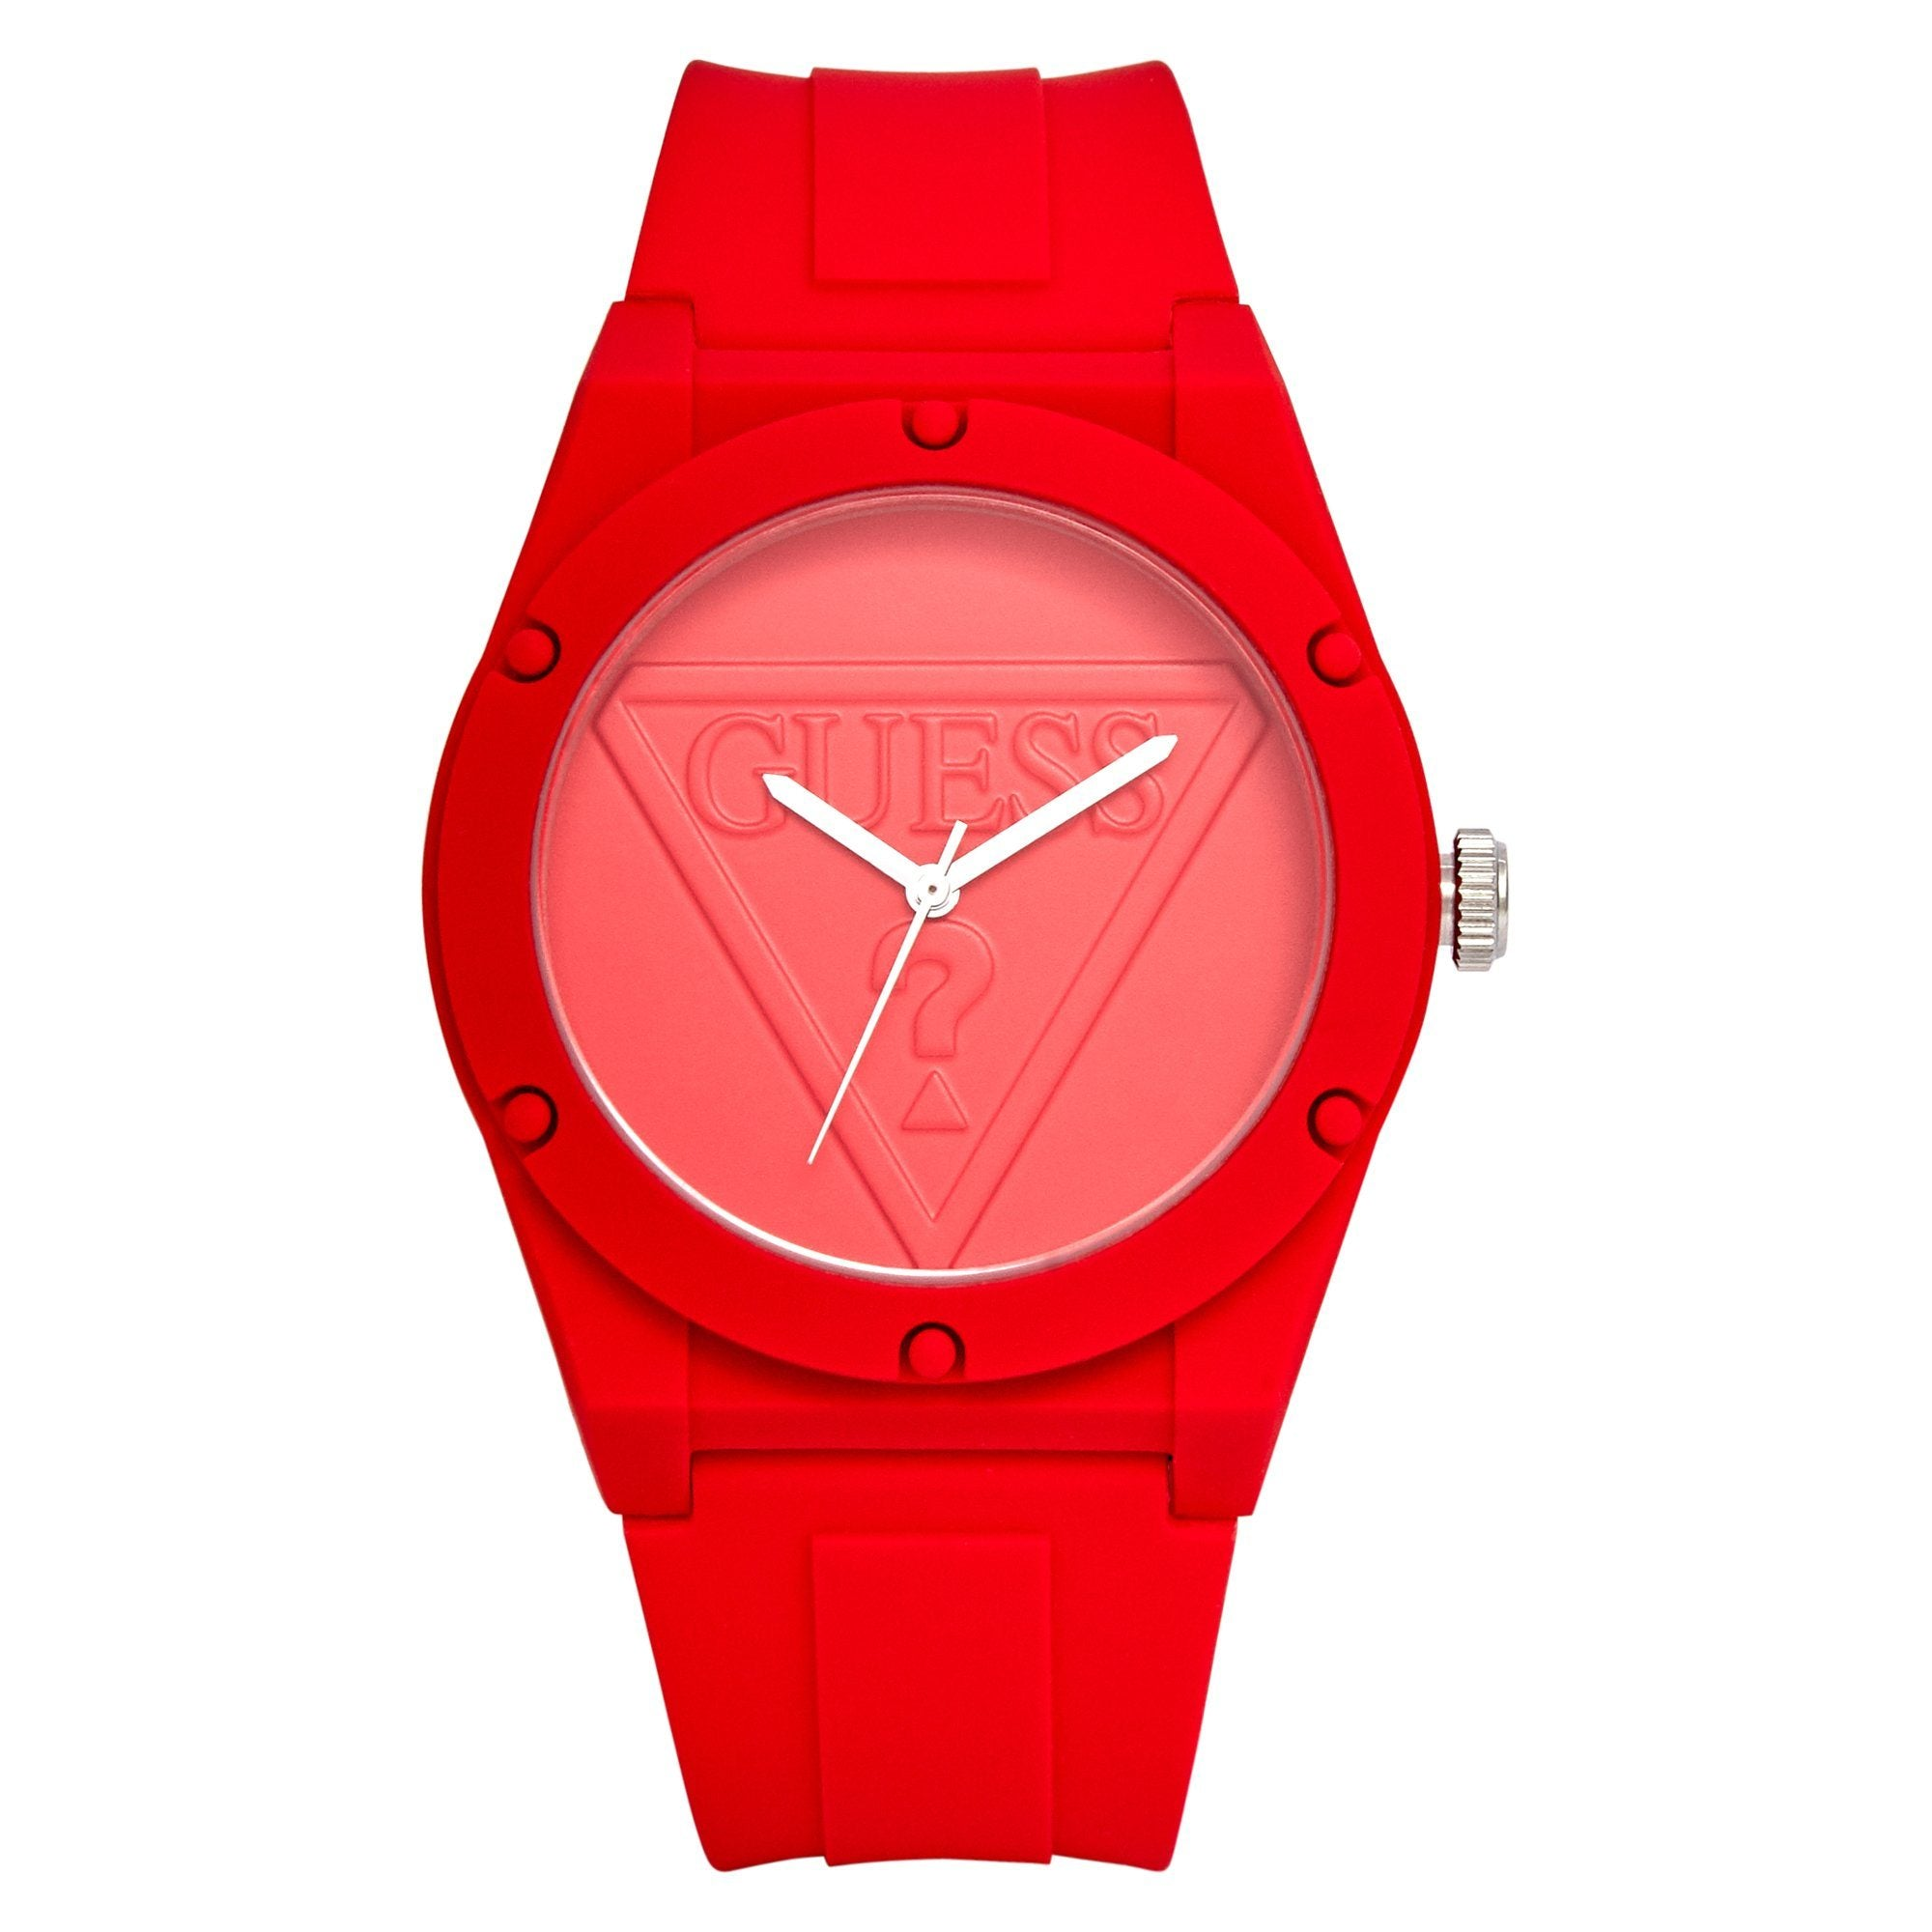 Guess Retro Pop Red Red Silc Watches Isbister & Co Wholesale